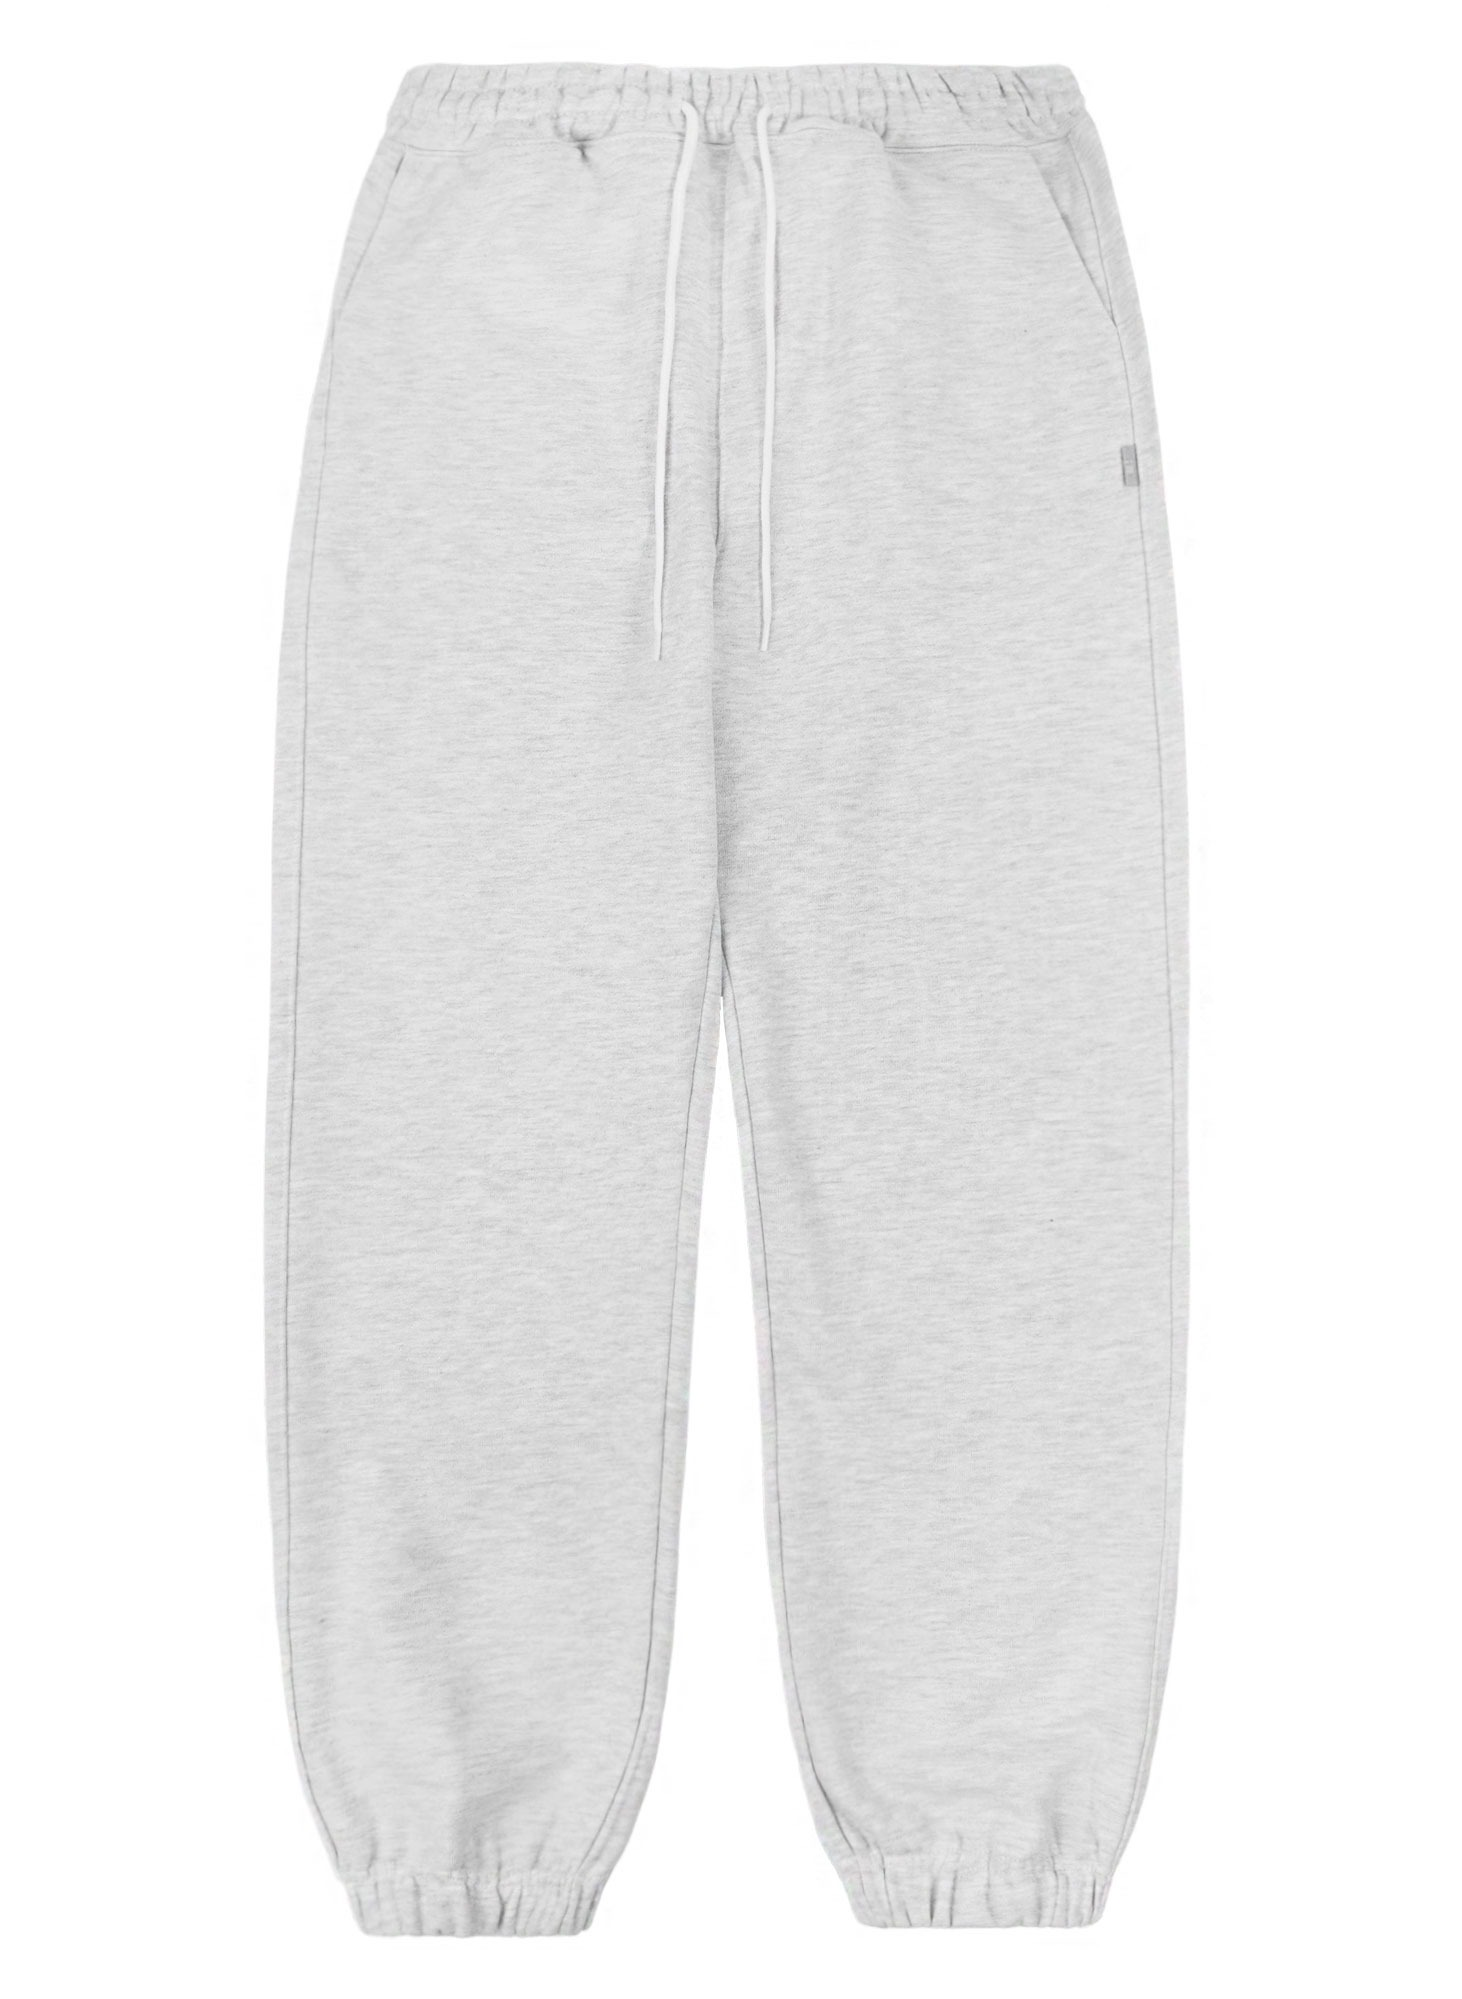 Loose Sweatpants (Light Gray)